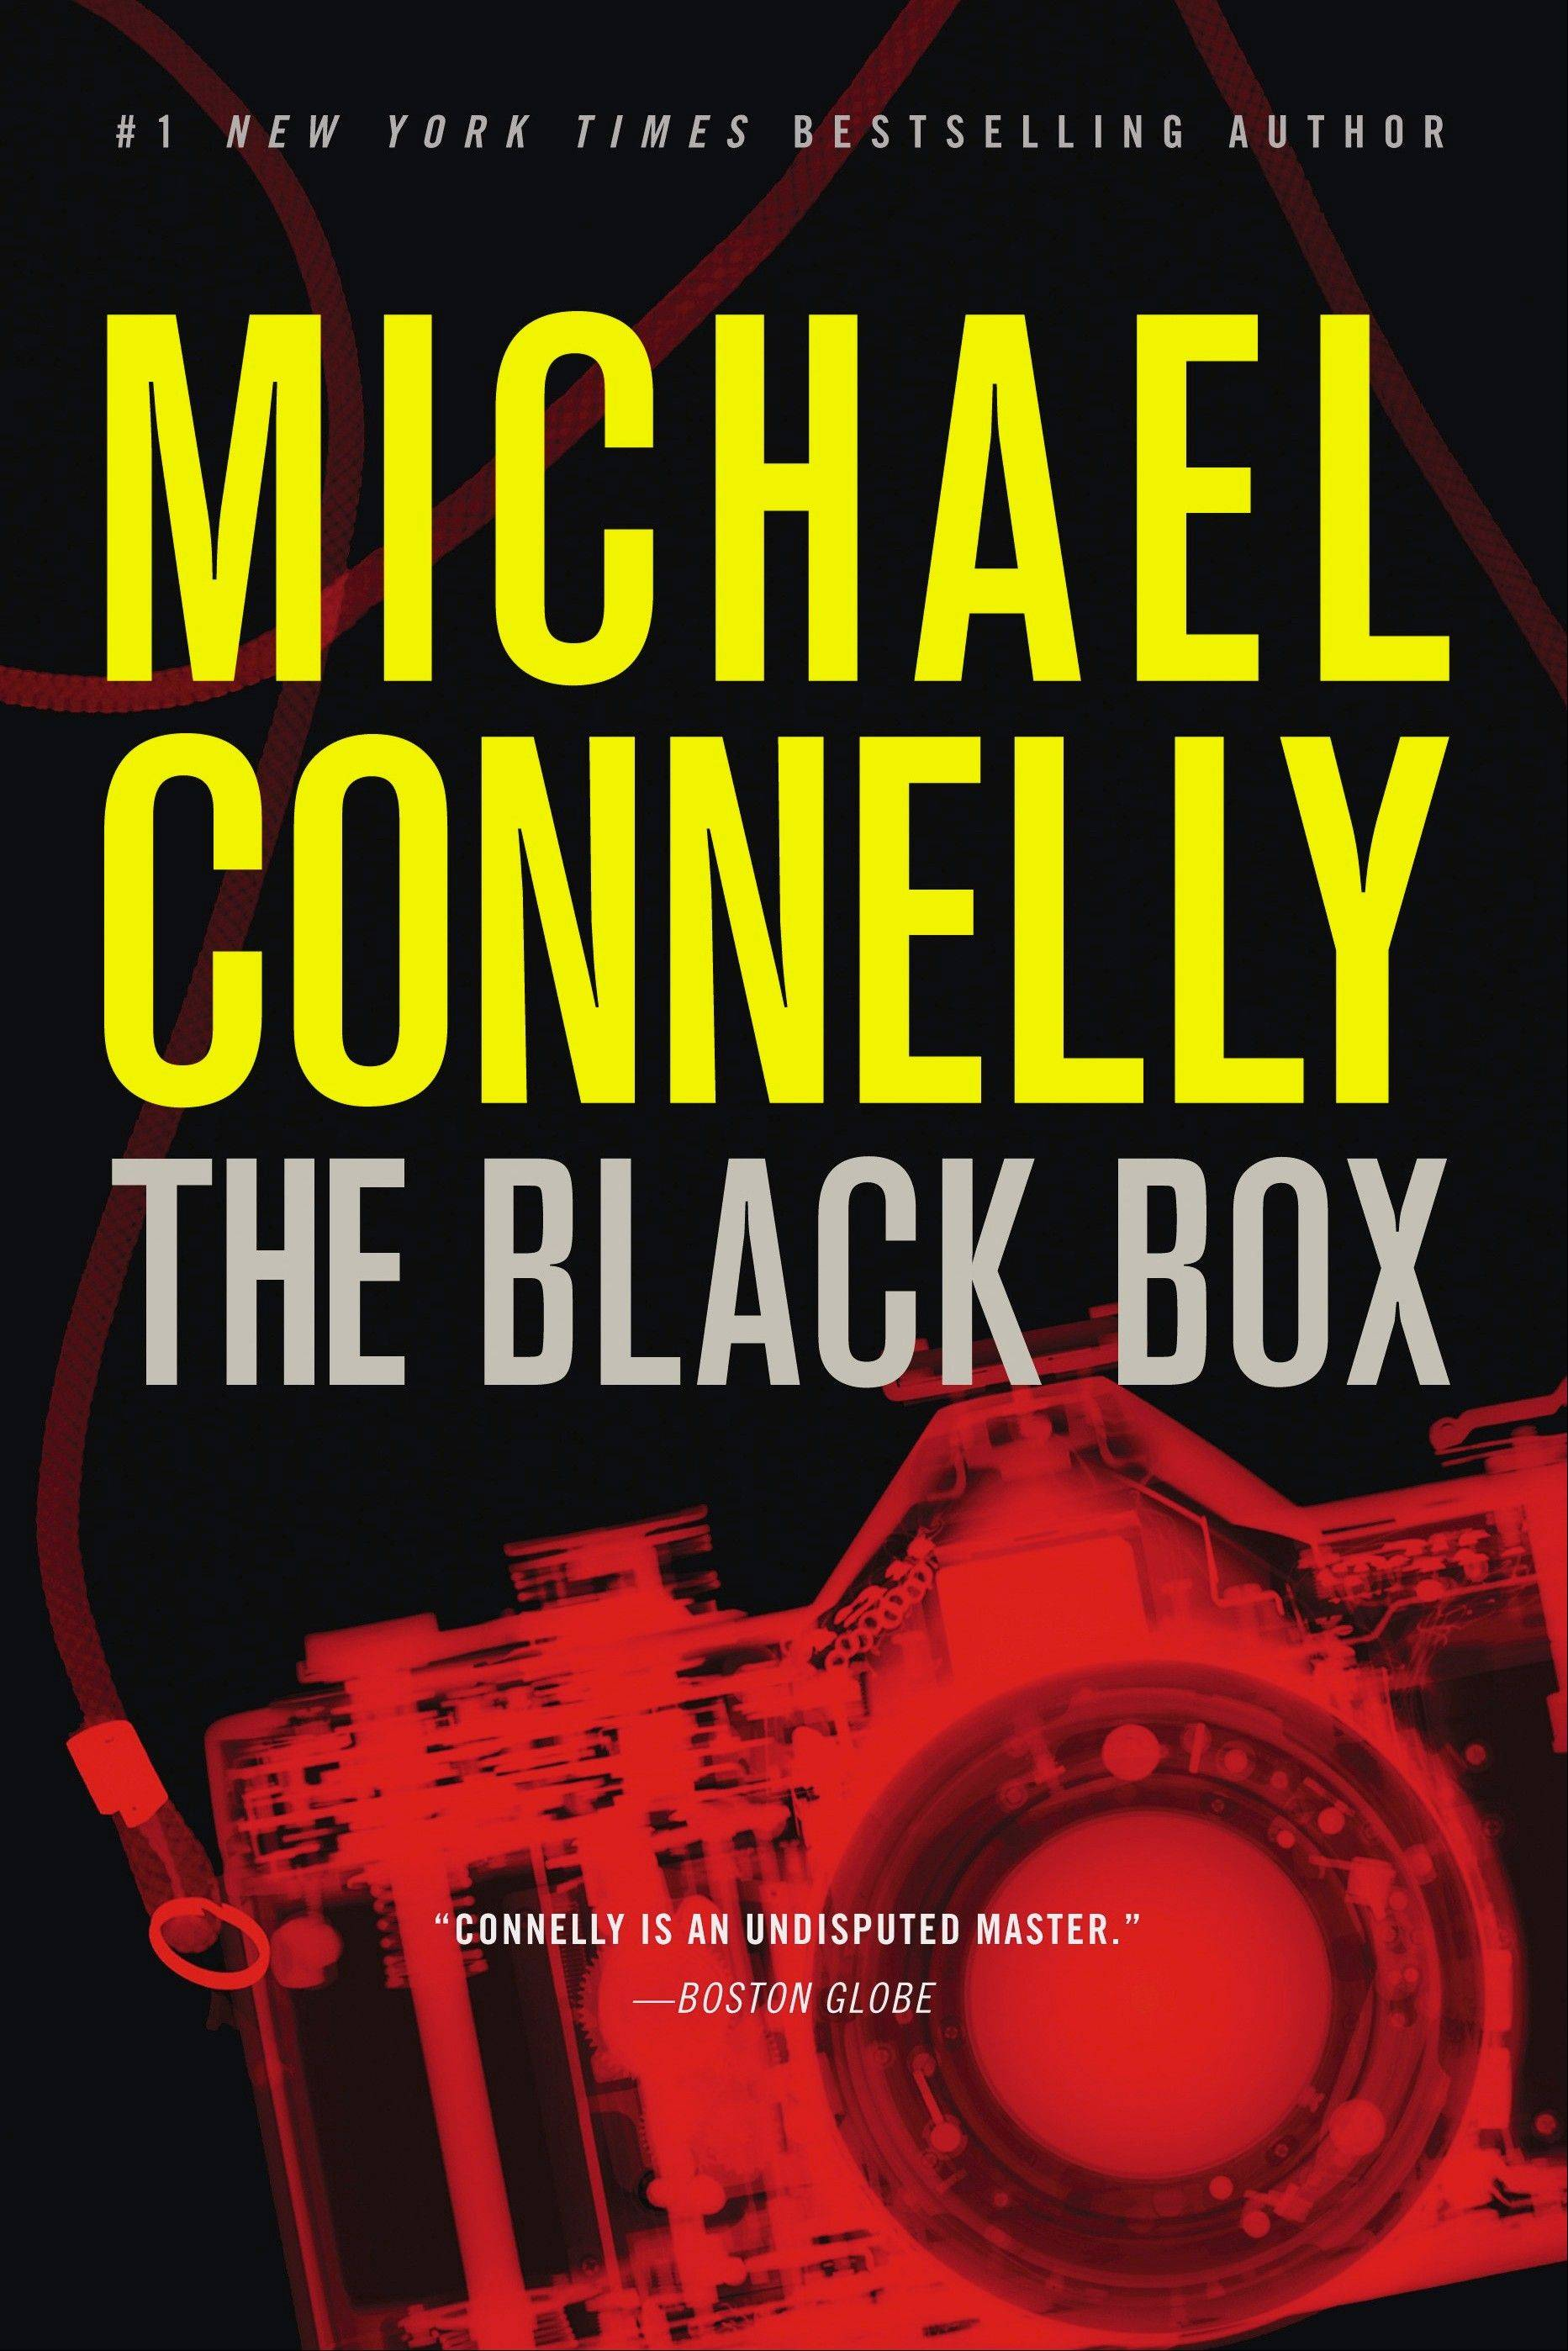 """The Black Box"" by Michael Connelly"